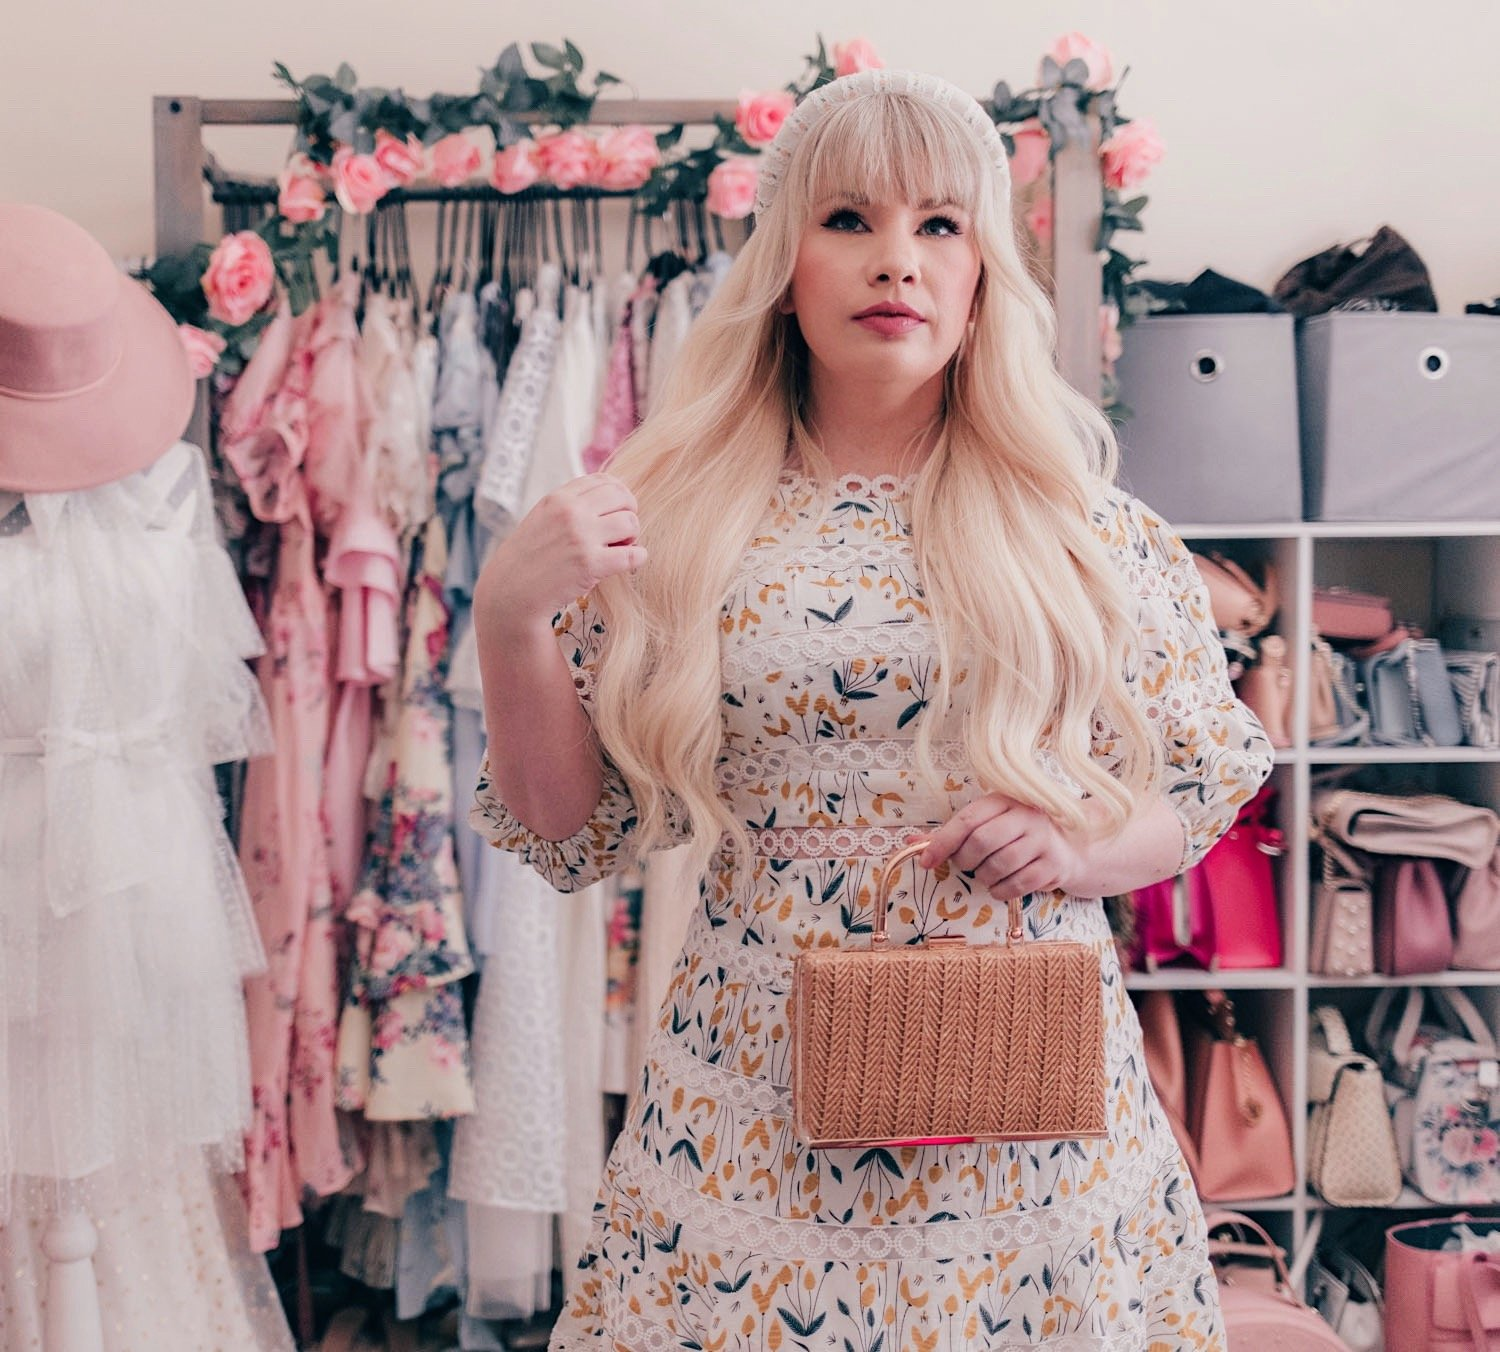 Fashion Blogger Elizabeth Hugen of Lizzie in Lace wears a floral summer dress from Chicwish